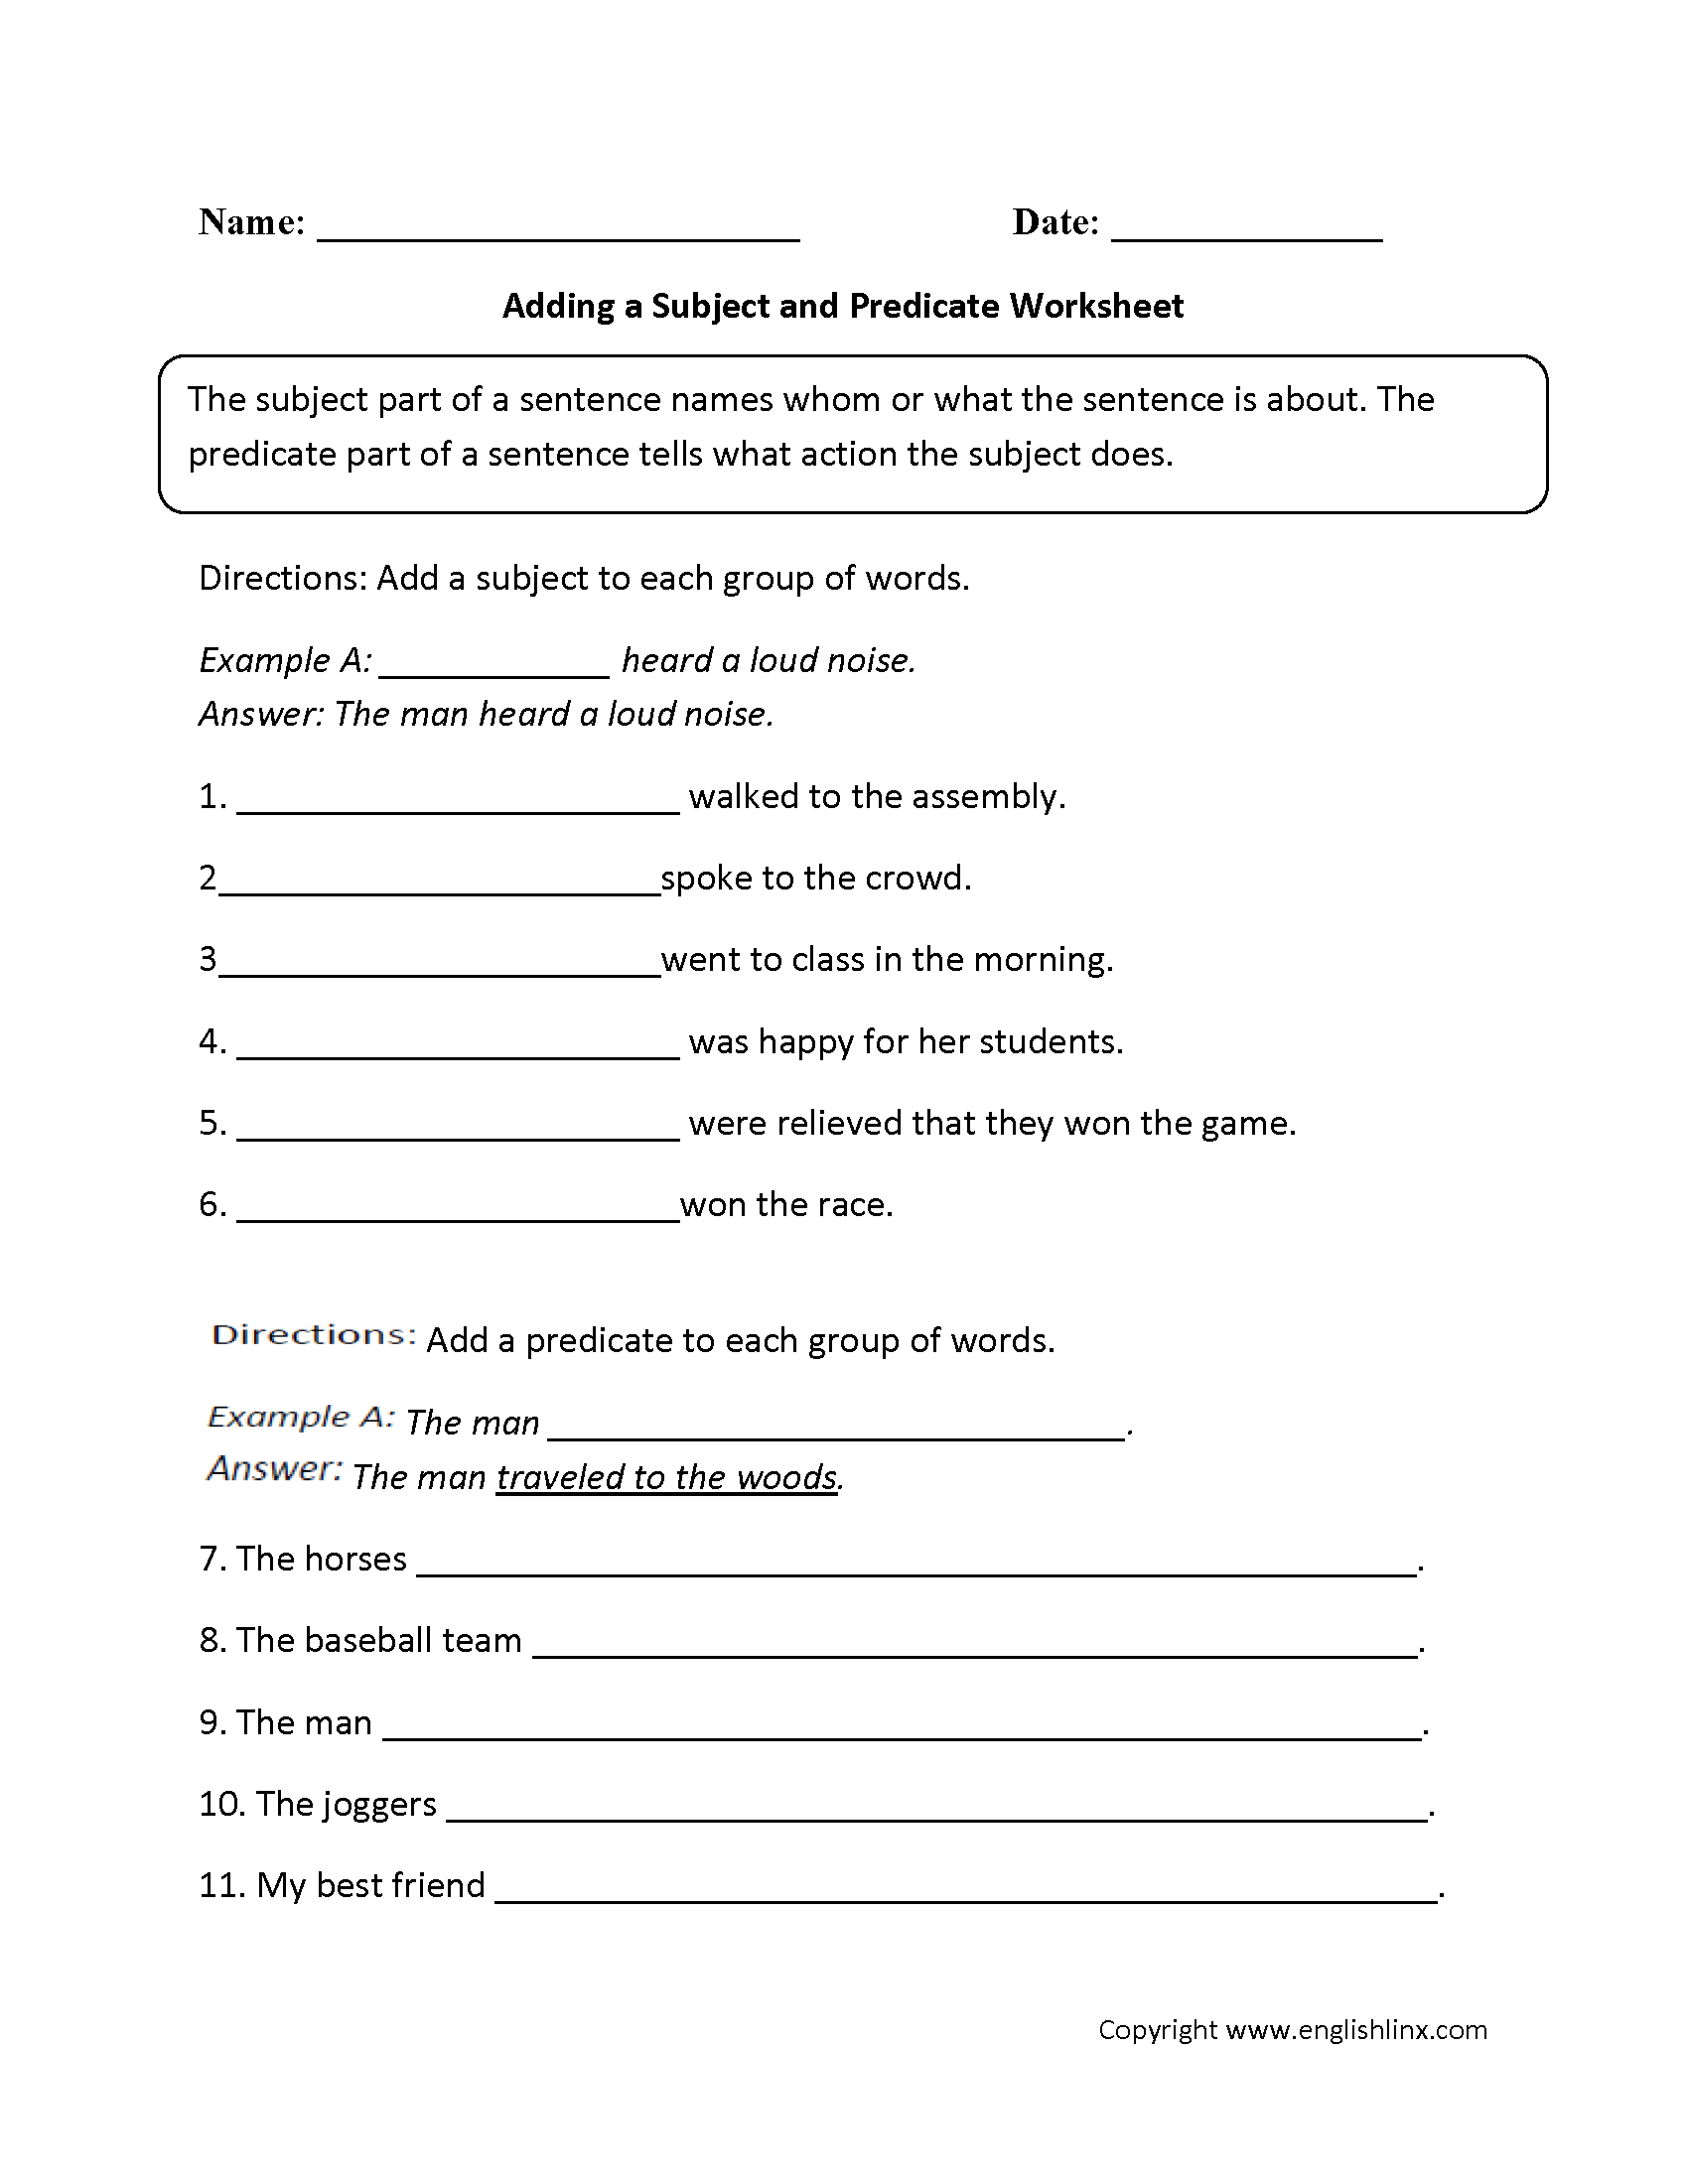 Adding a Subject and Predicate Worksheet – Predicate Worksheets